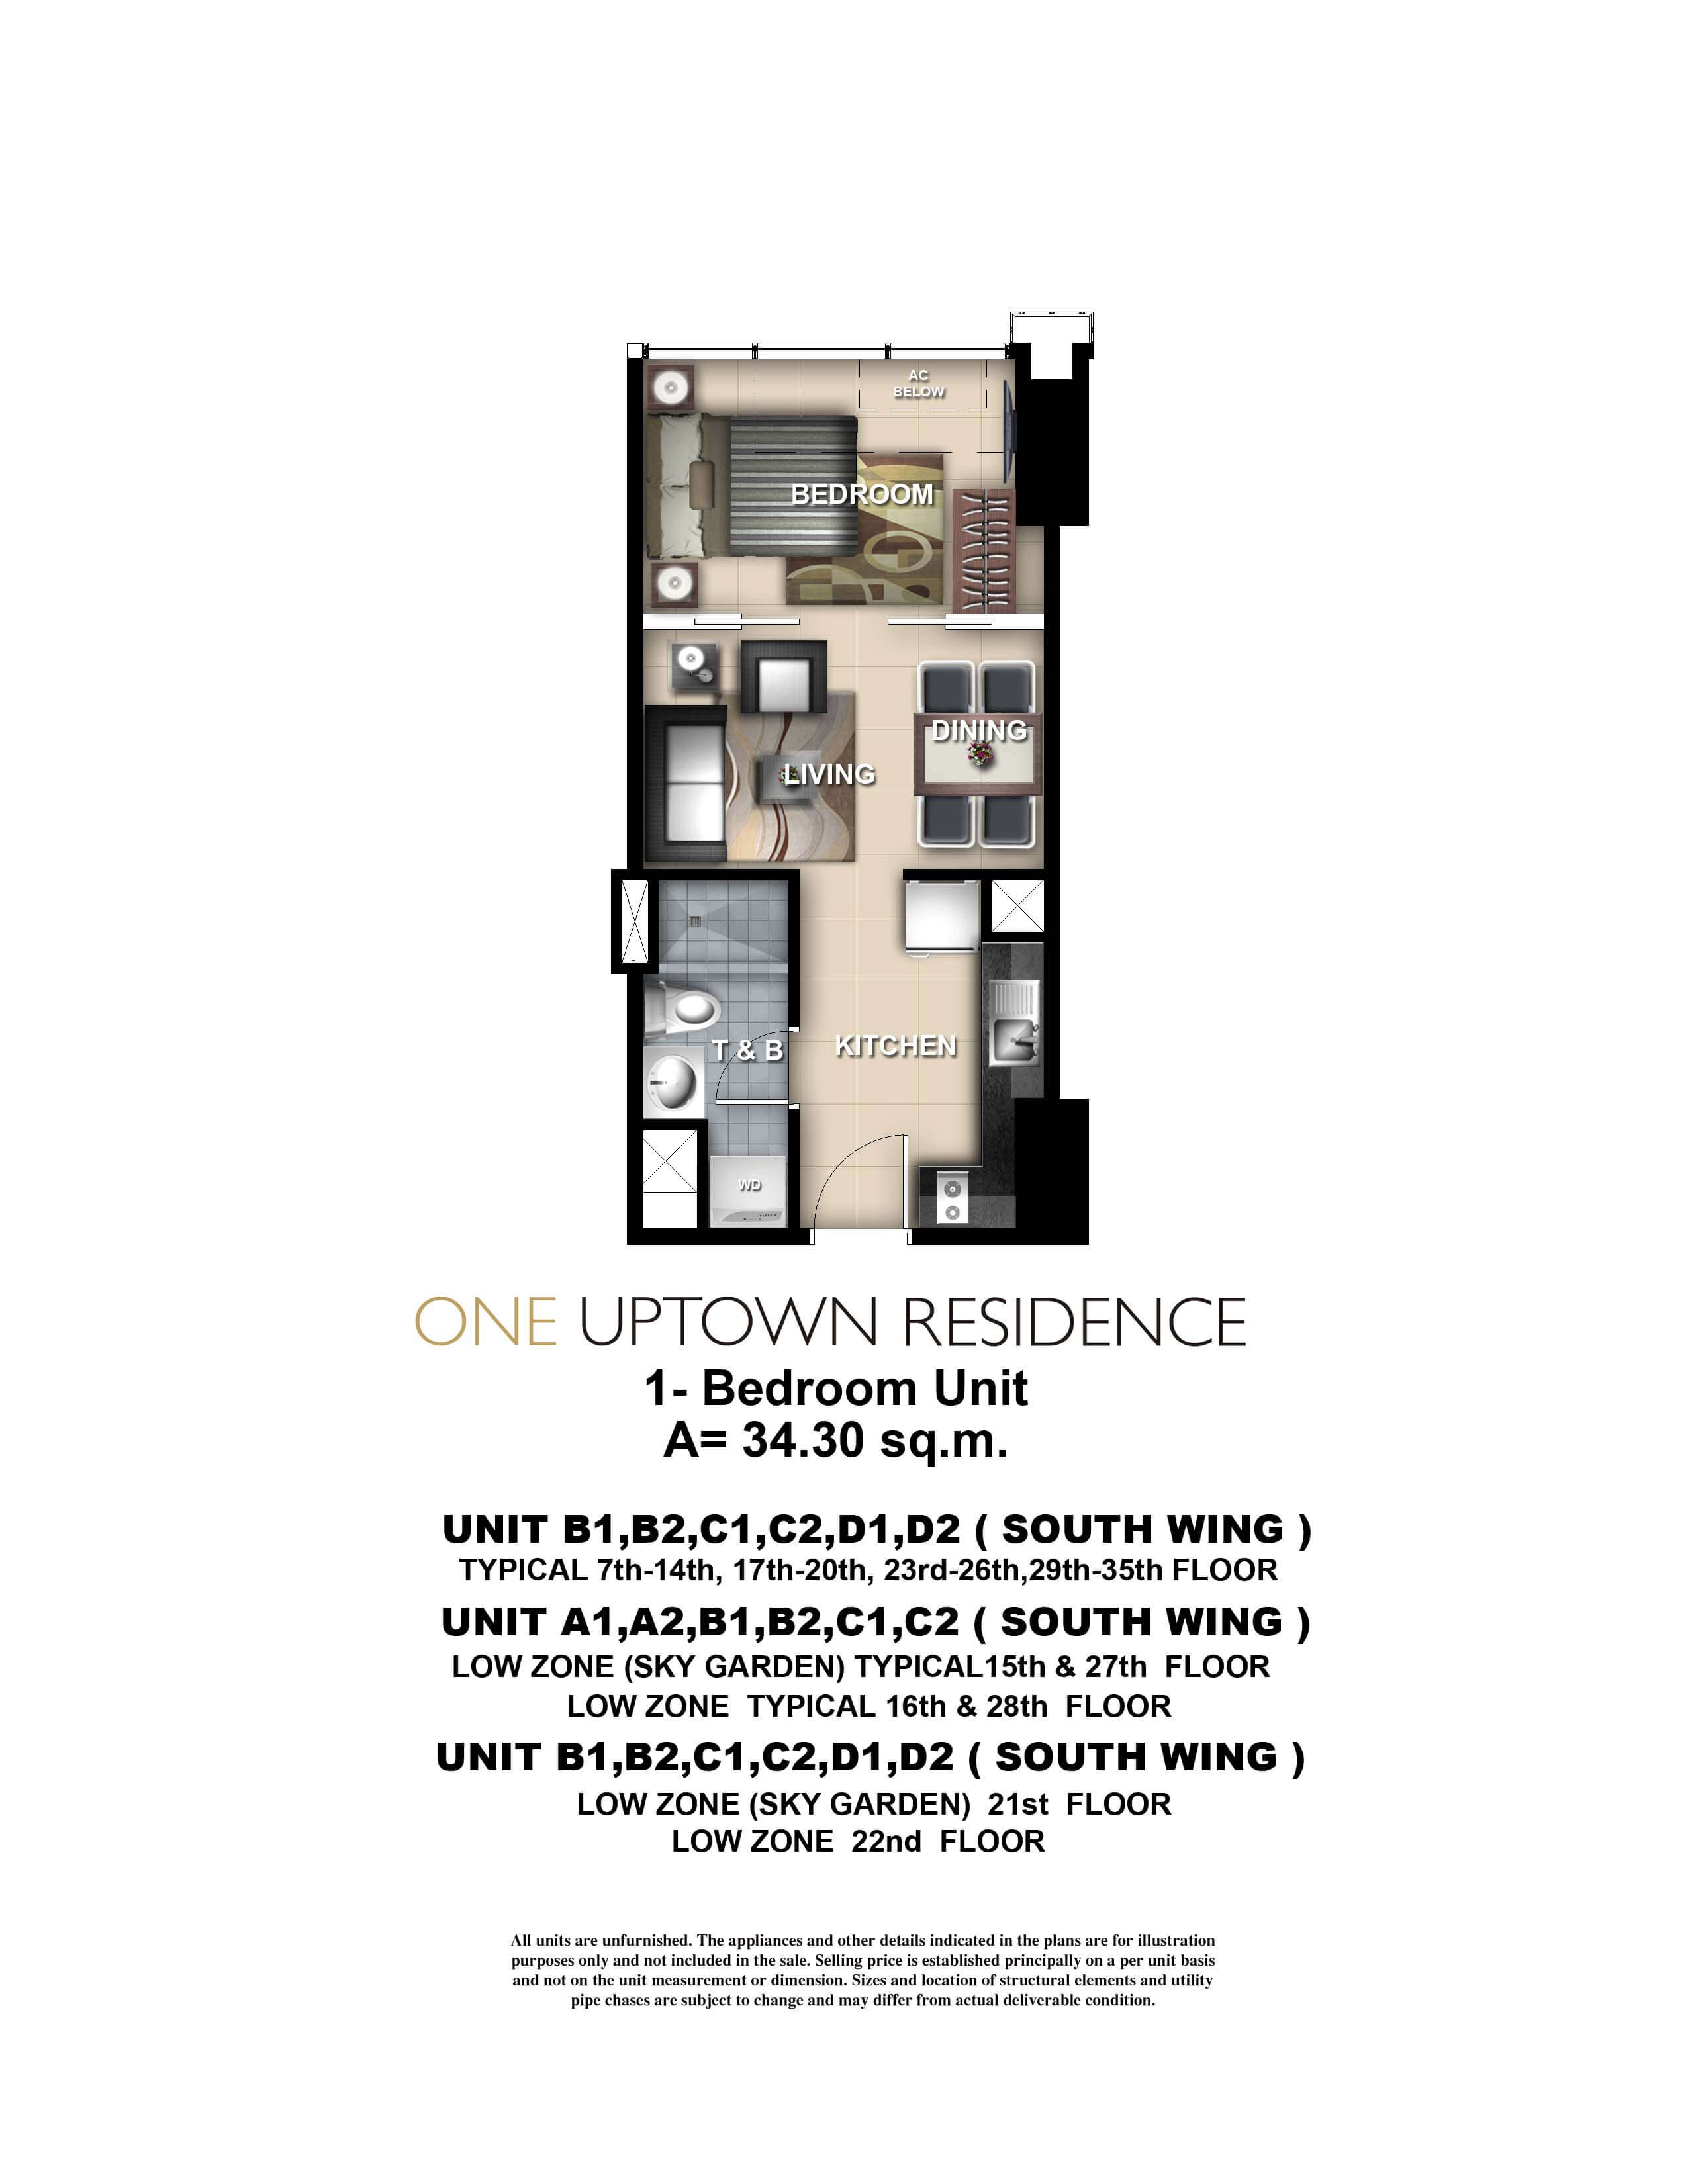 One Uptown Residence Unit Layout 1BR (34.4sqm)